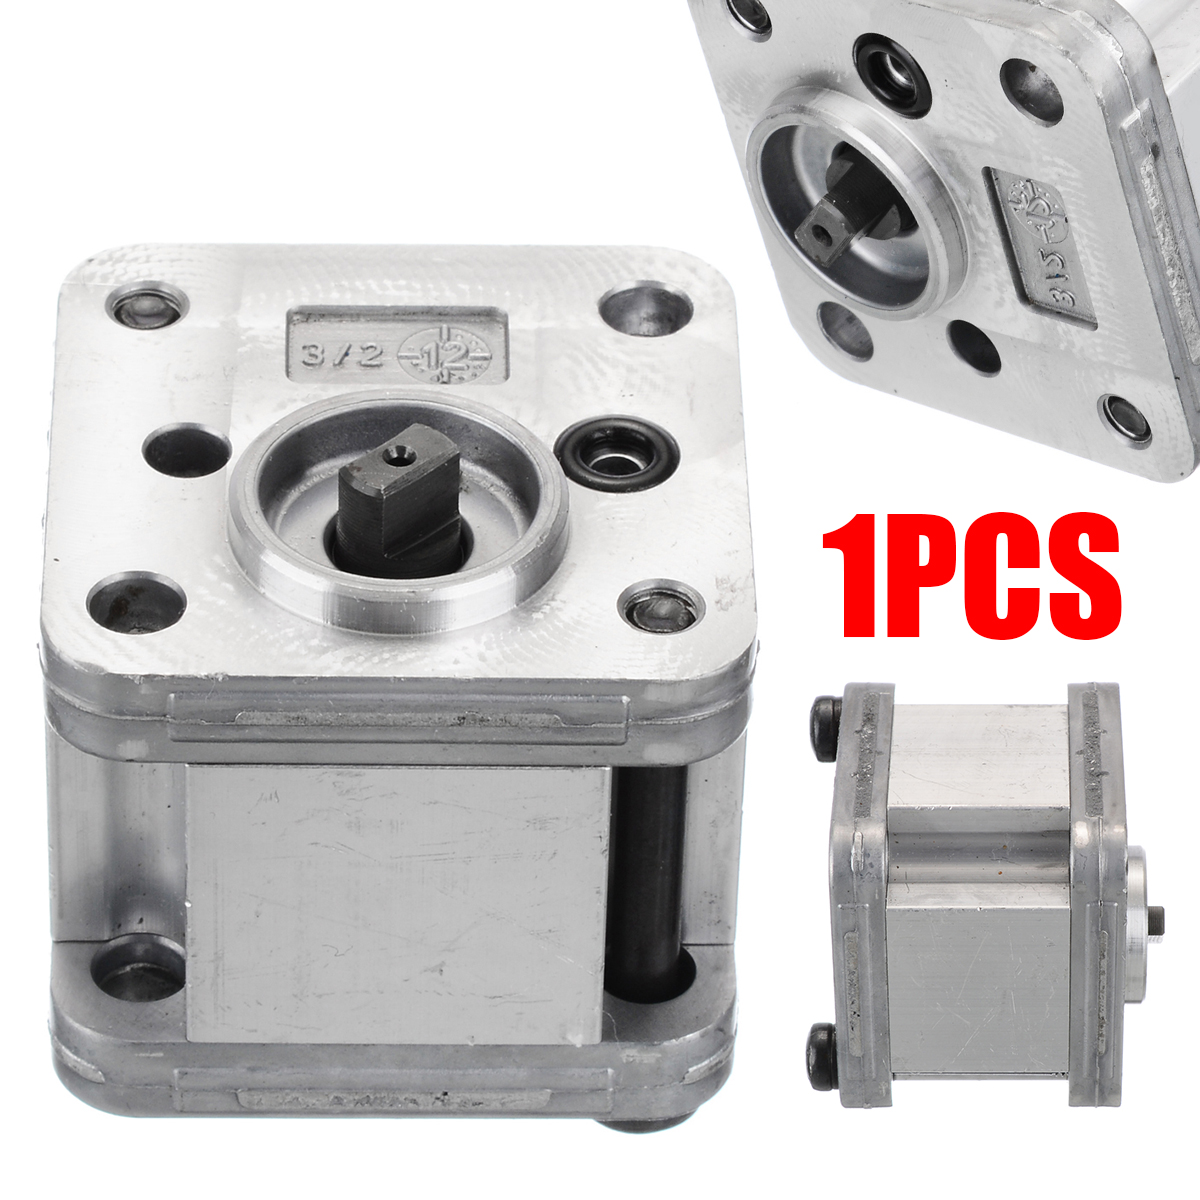 1Pcs Hydraulic Gear Pump Metal Gear Pump Hydraulic Model Excavating Machinery High Quality For Home Tools